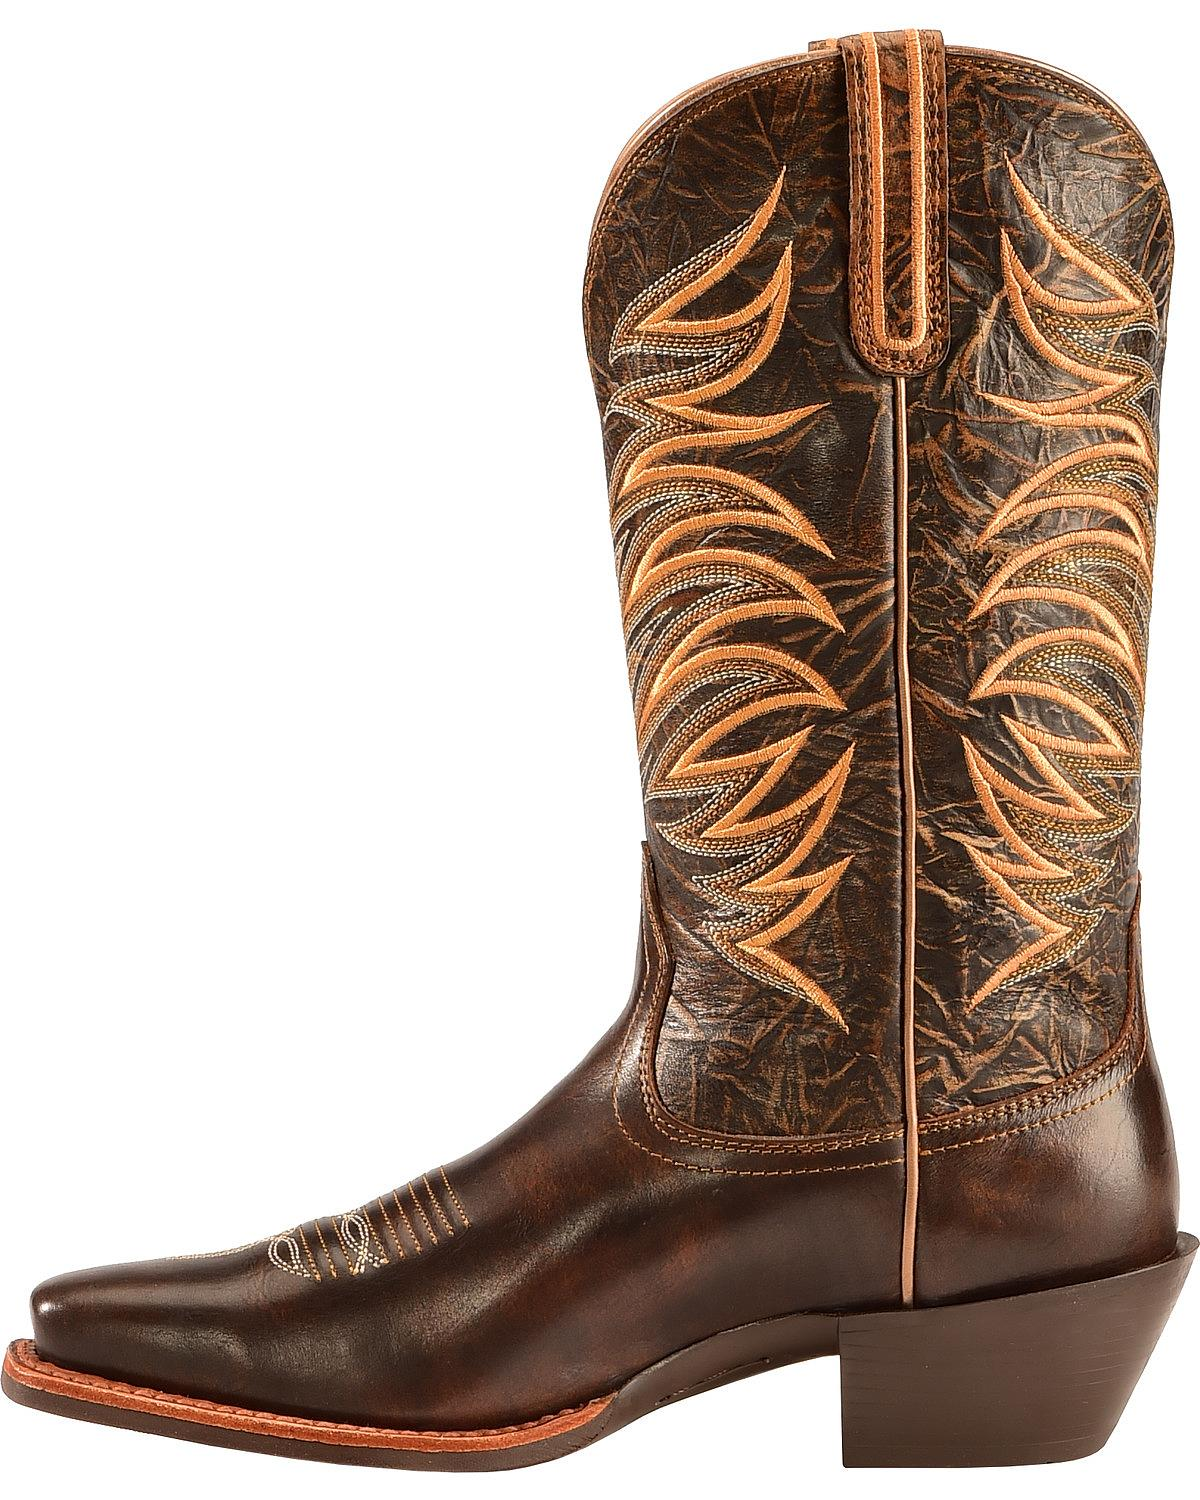 Amazing Ariat Womenu0026#39;s Quickdraw Cowgirl Boots - Square Toe | Sheplers